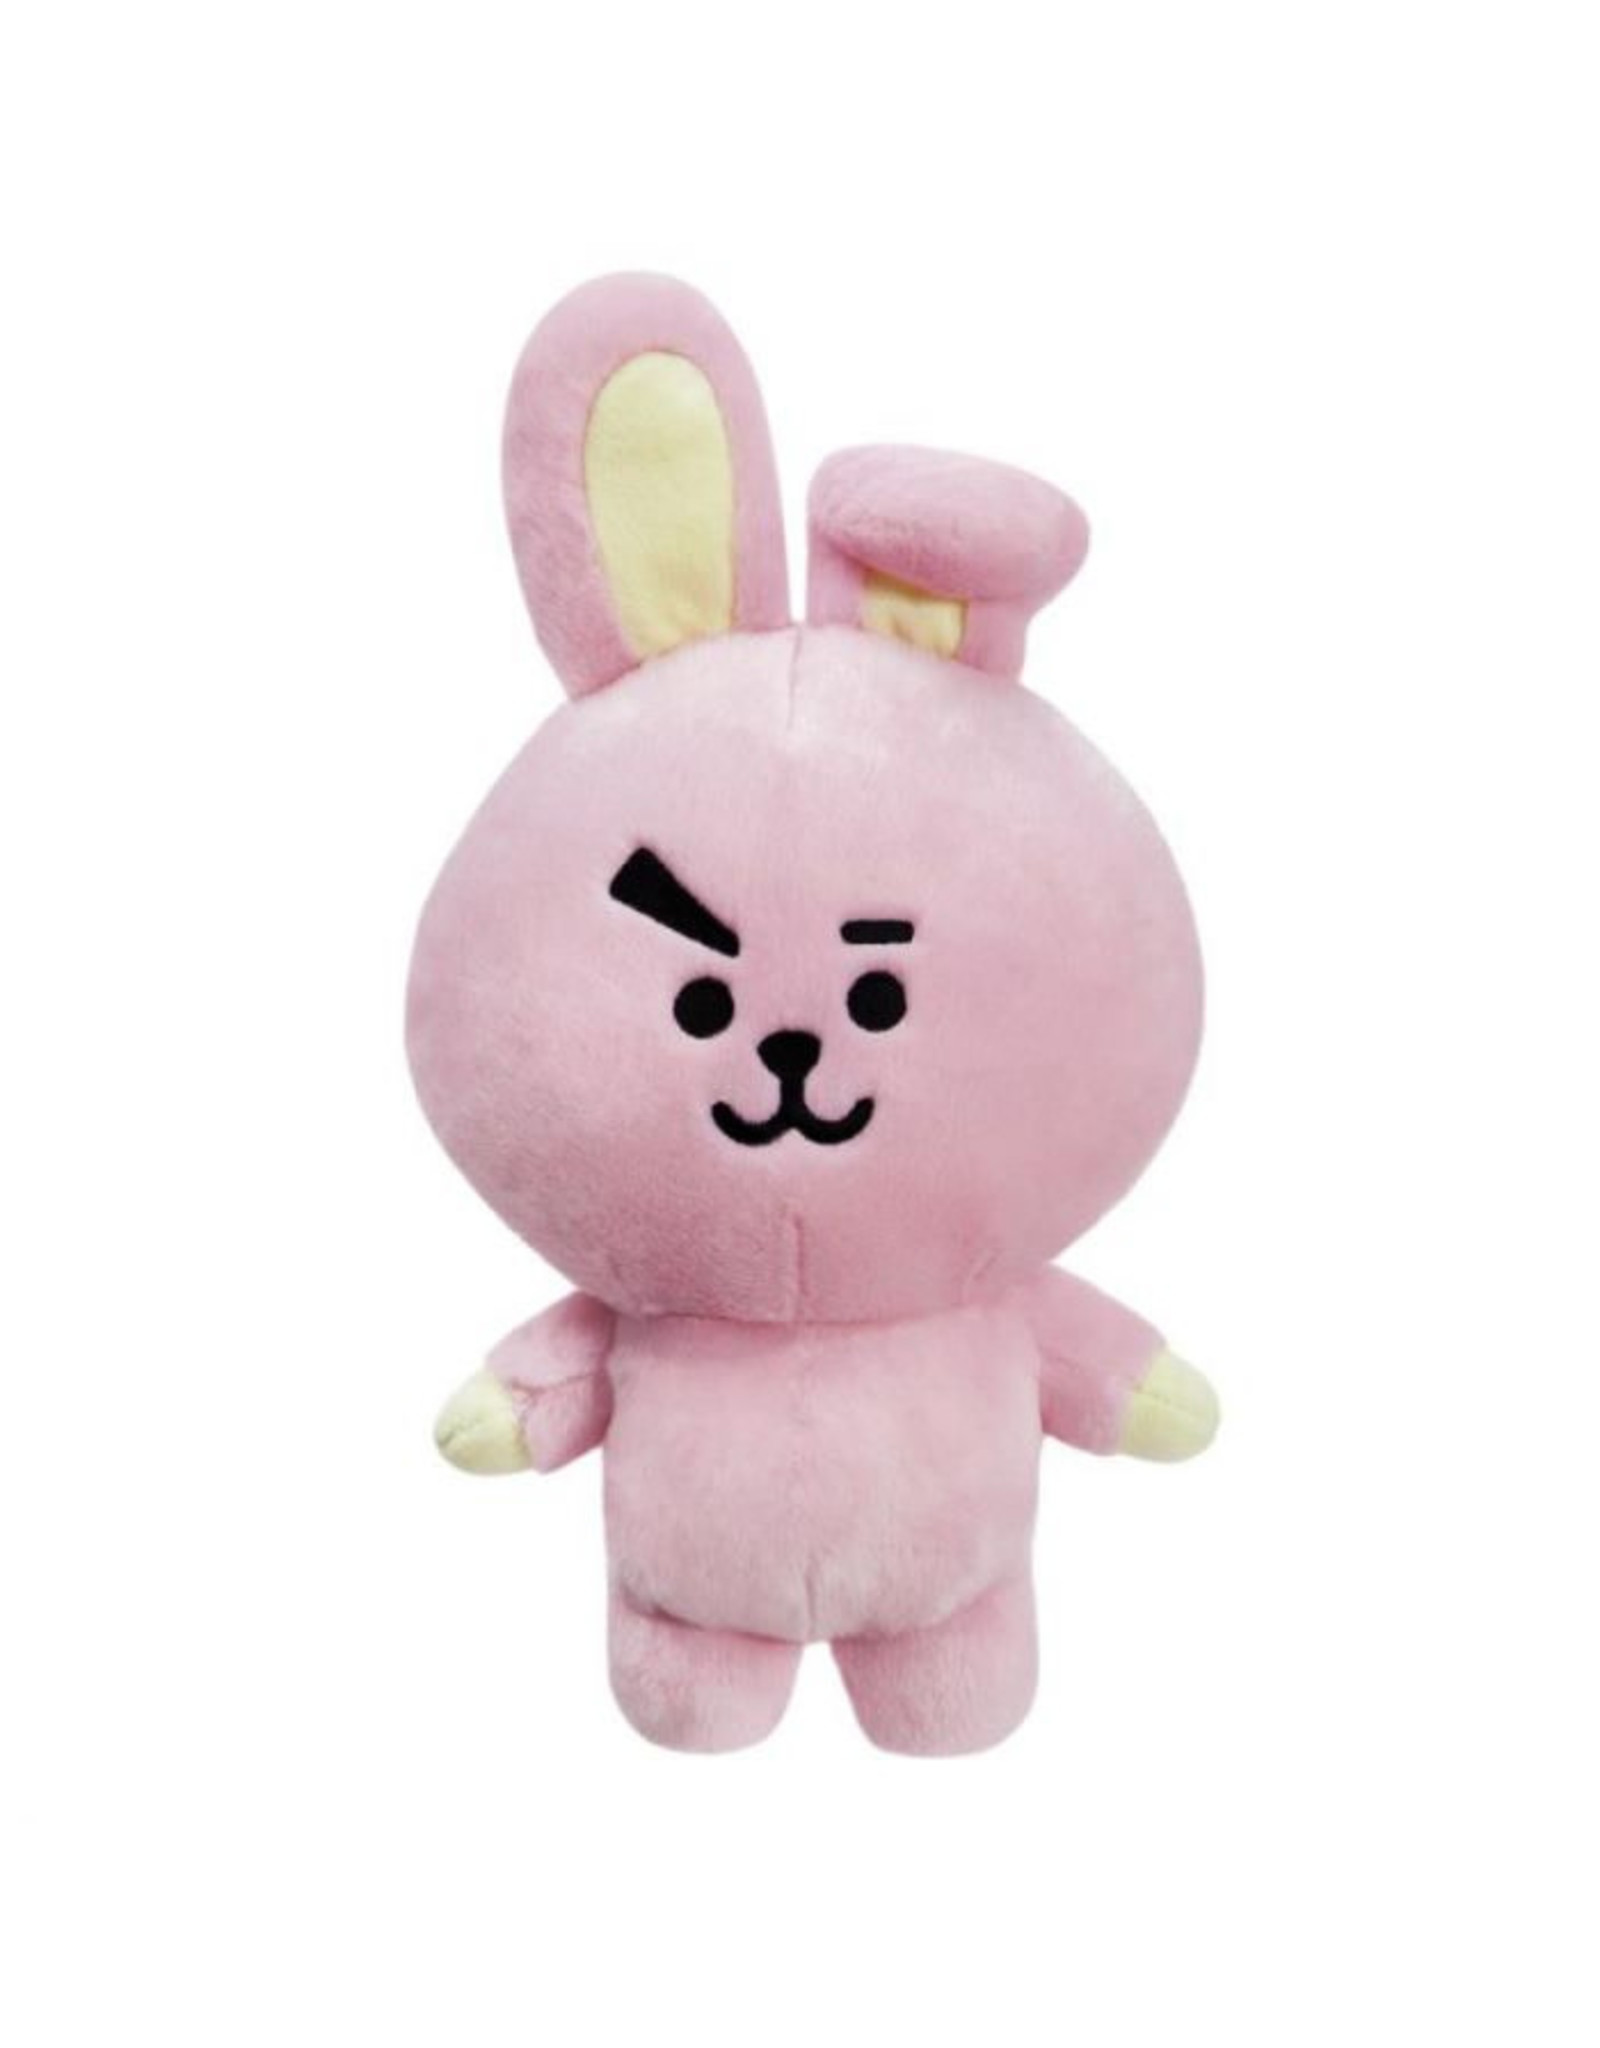 BT21 - Cooky - Line Friends Big Plush - 26 cm